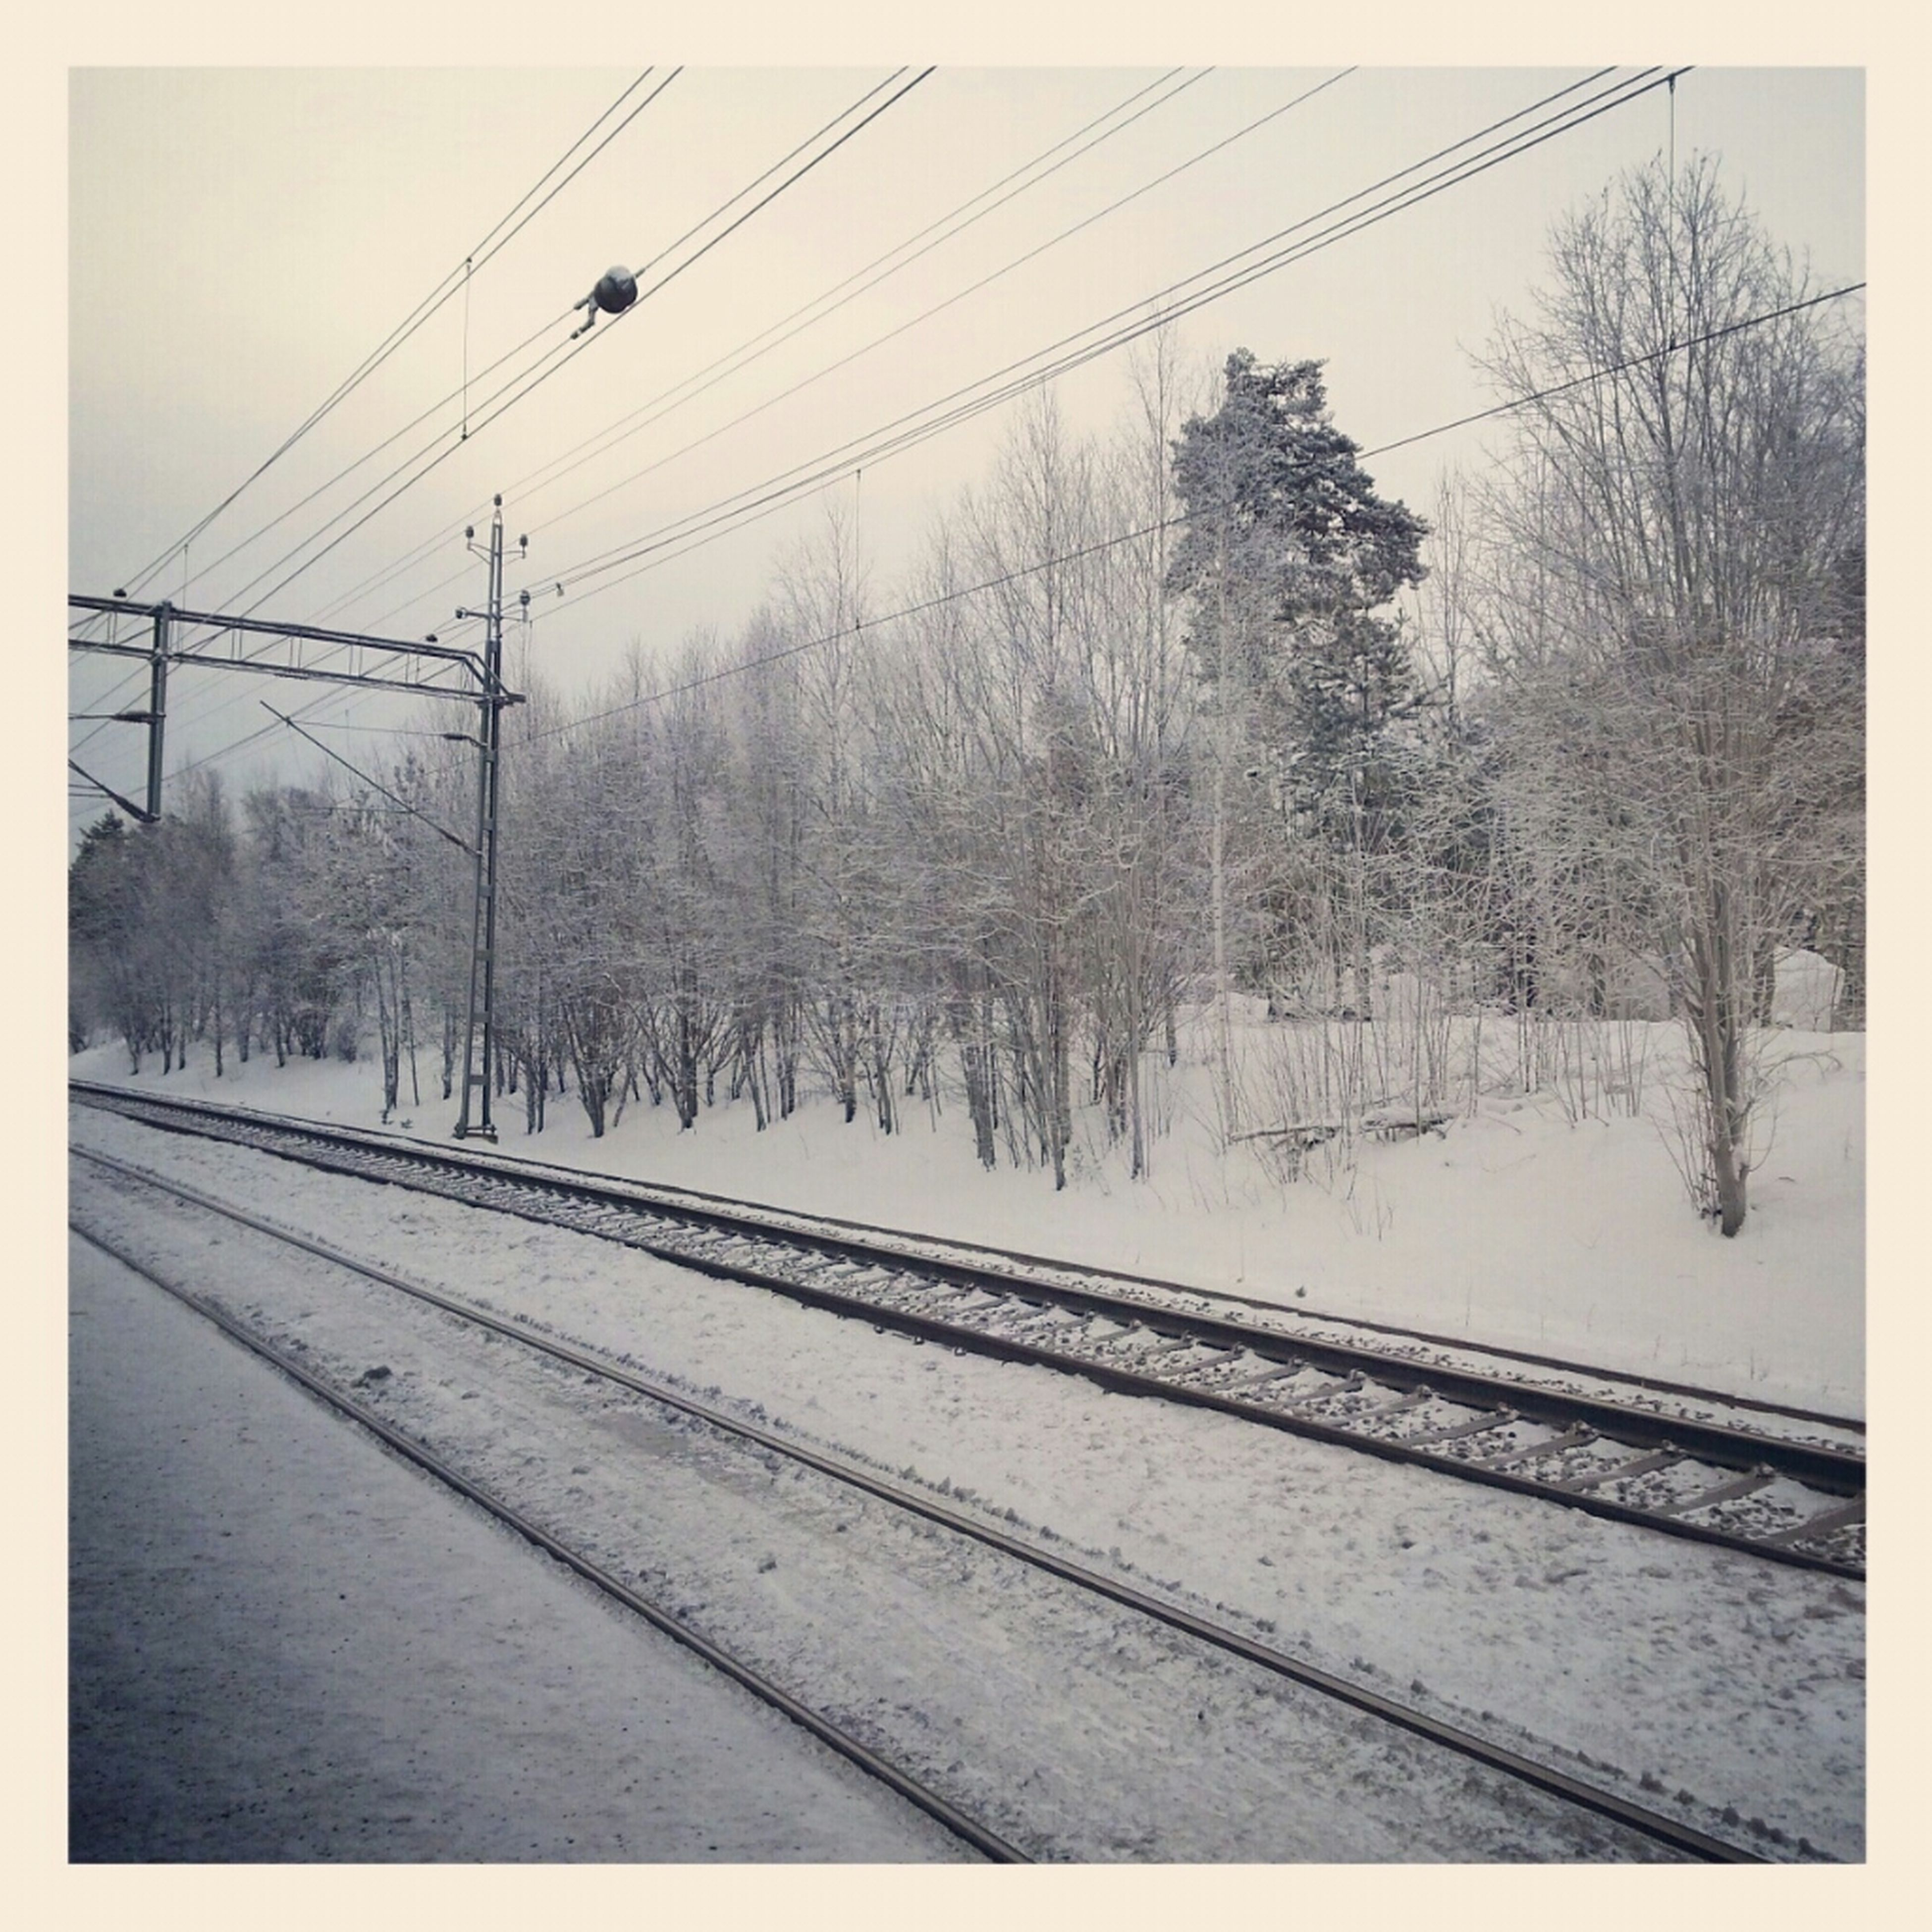 snow, transportation, winter, tree, cold temperature, transfer print, railroad track, season, power line, weather, auto post production filter, electricity pylon, rail transportation, road, connection, clear sky, public transportation, nature, day, power supply